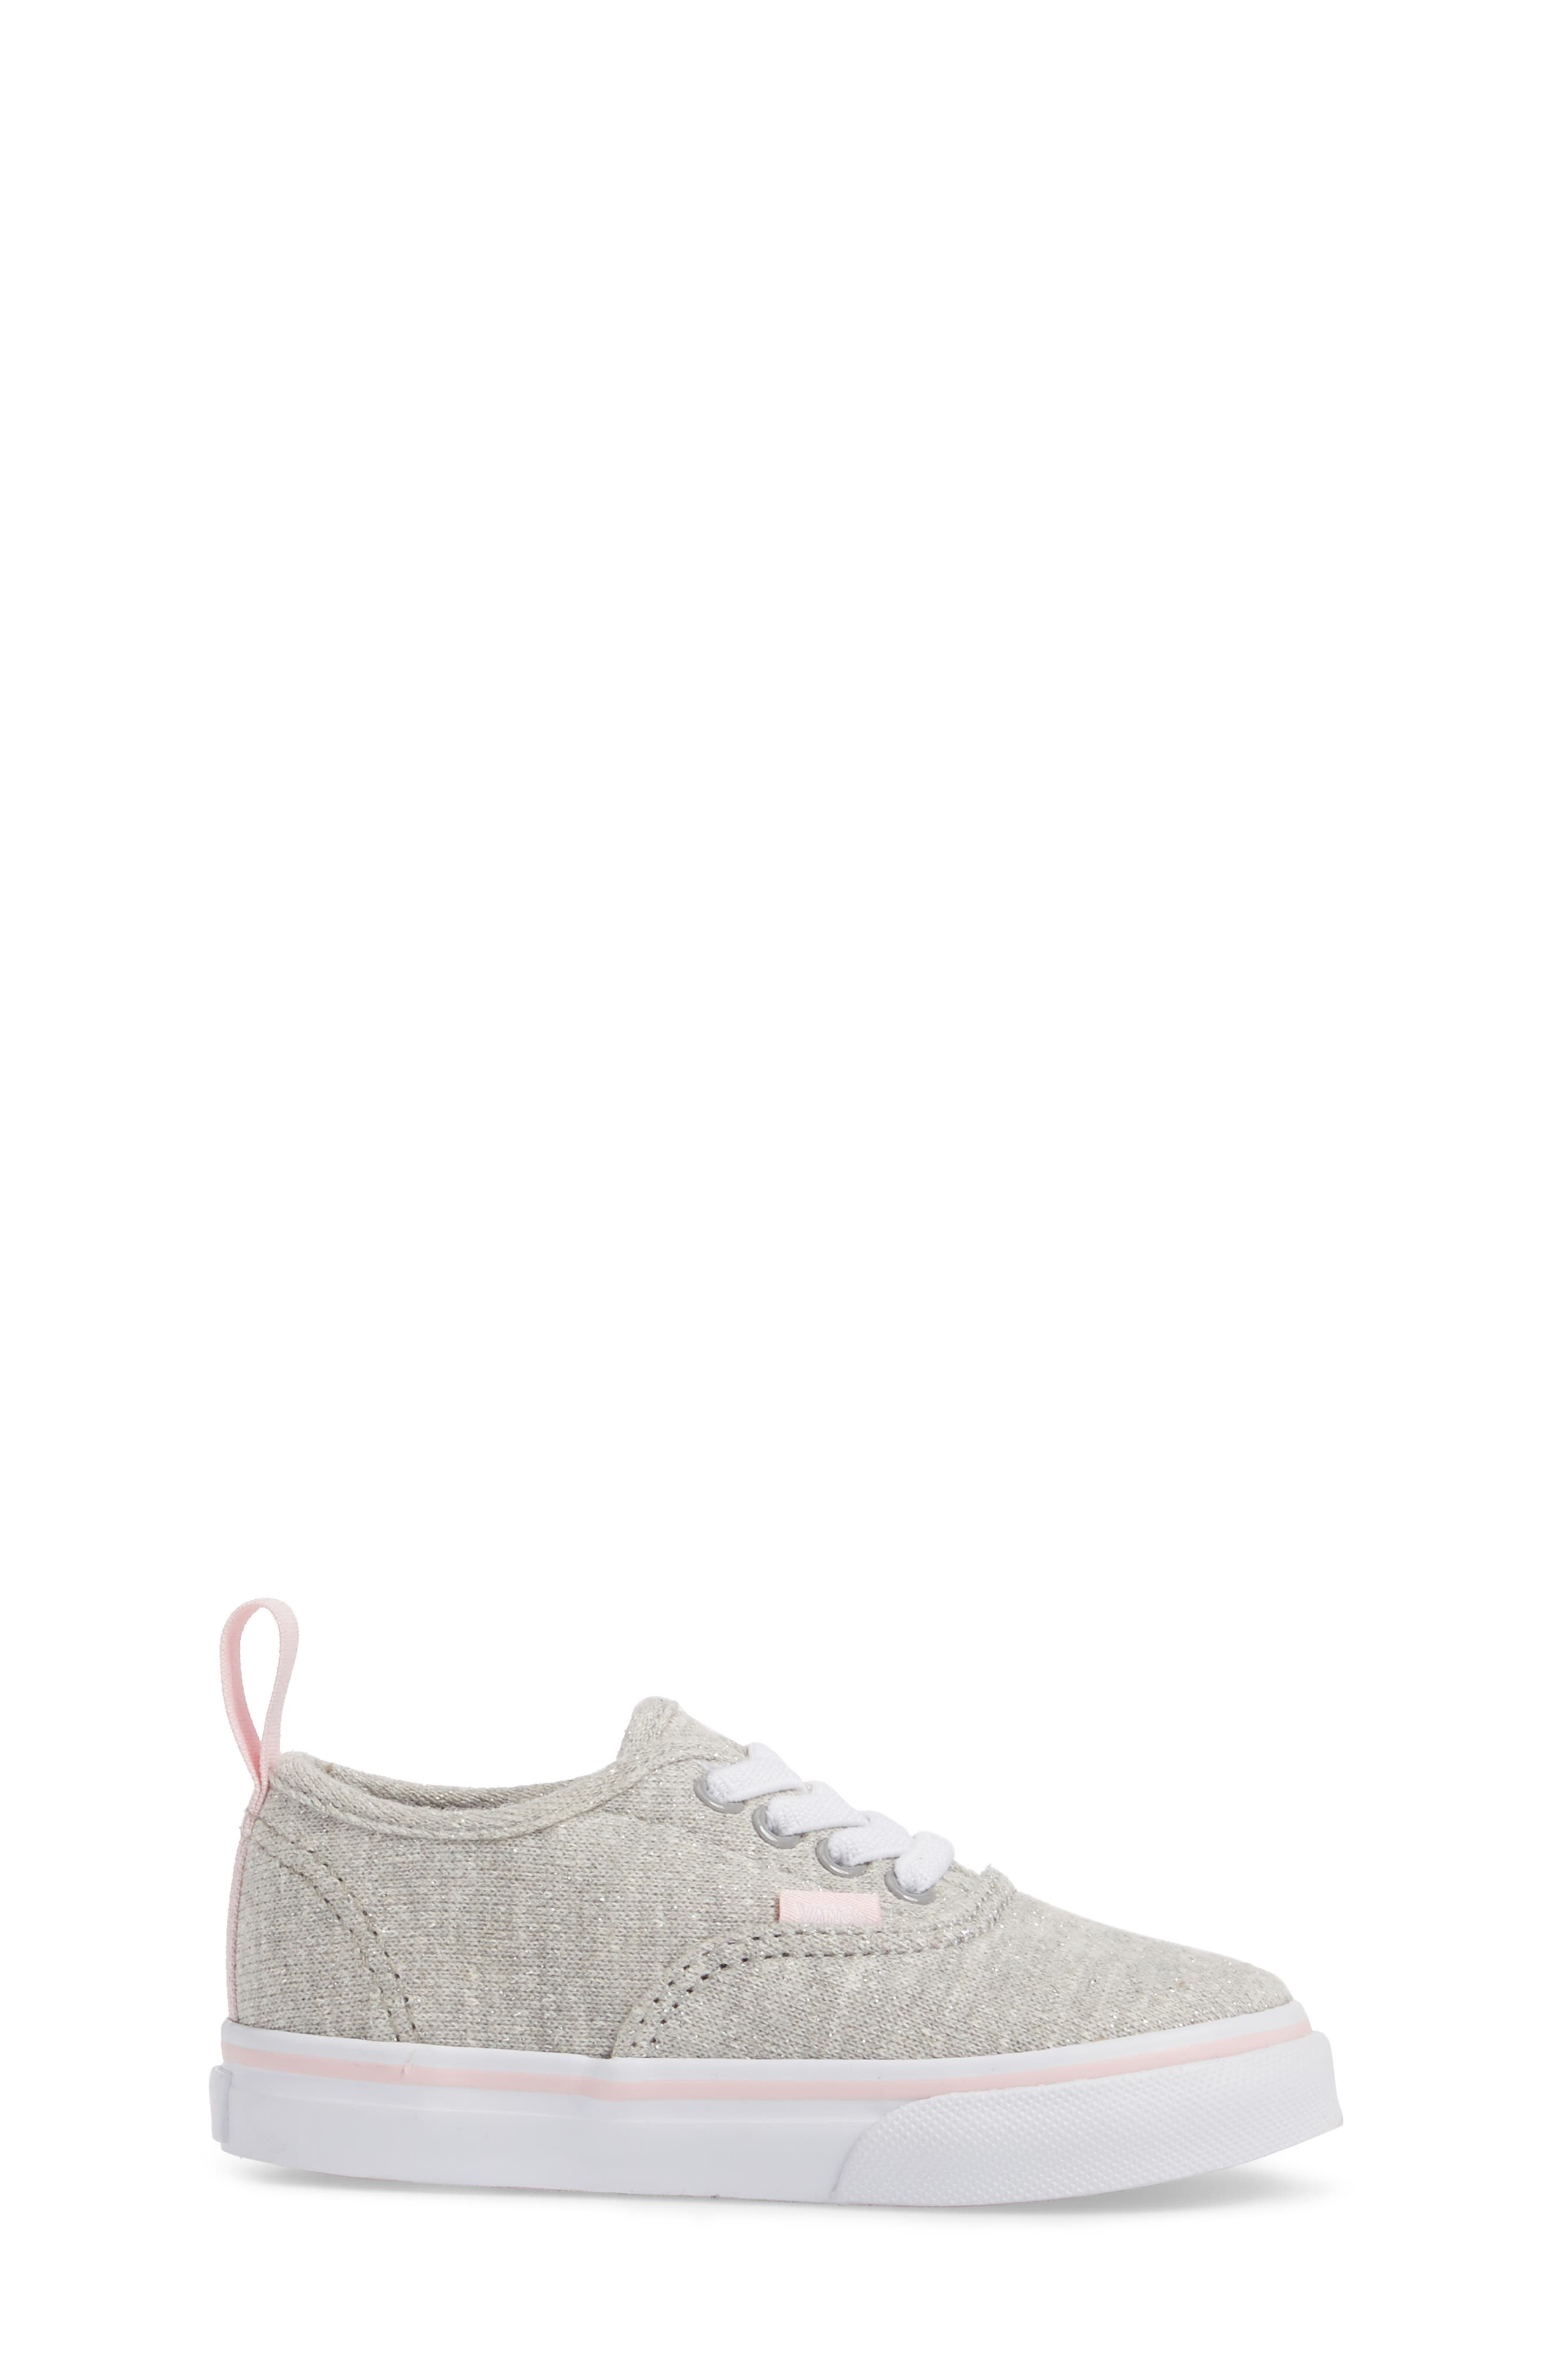 Authentic Glitter Sneaker,                             Alternate thumbnail 3, color,                             Gray/ Pink Shimmer Jersey